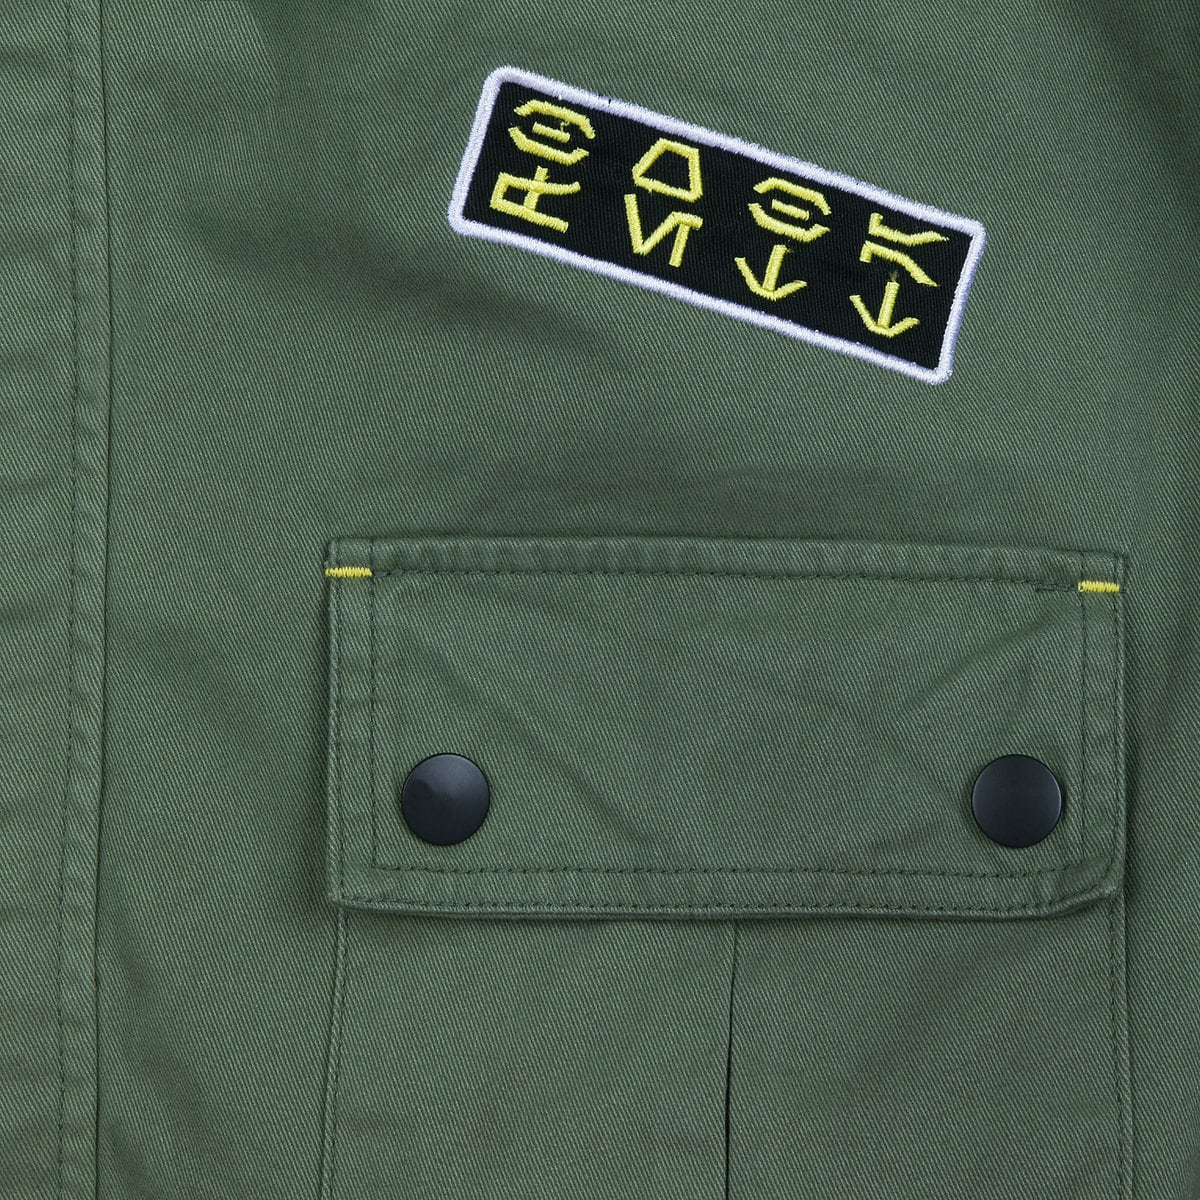 9f8924244e7 Product Image of Boba Fett Military Jacket for Adults - Star Wars # 6